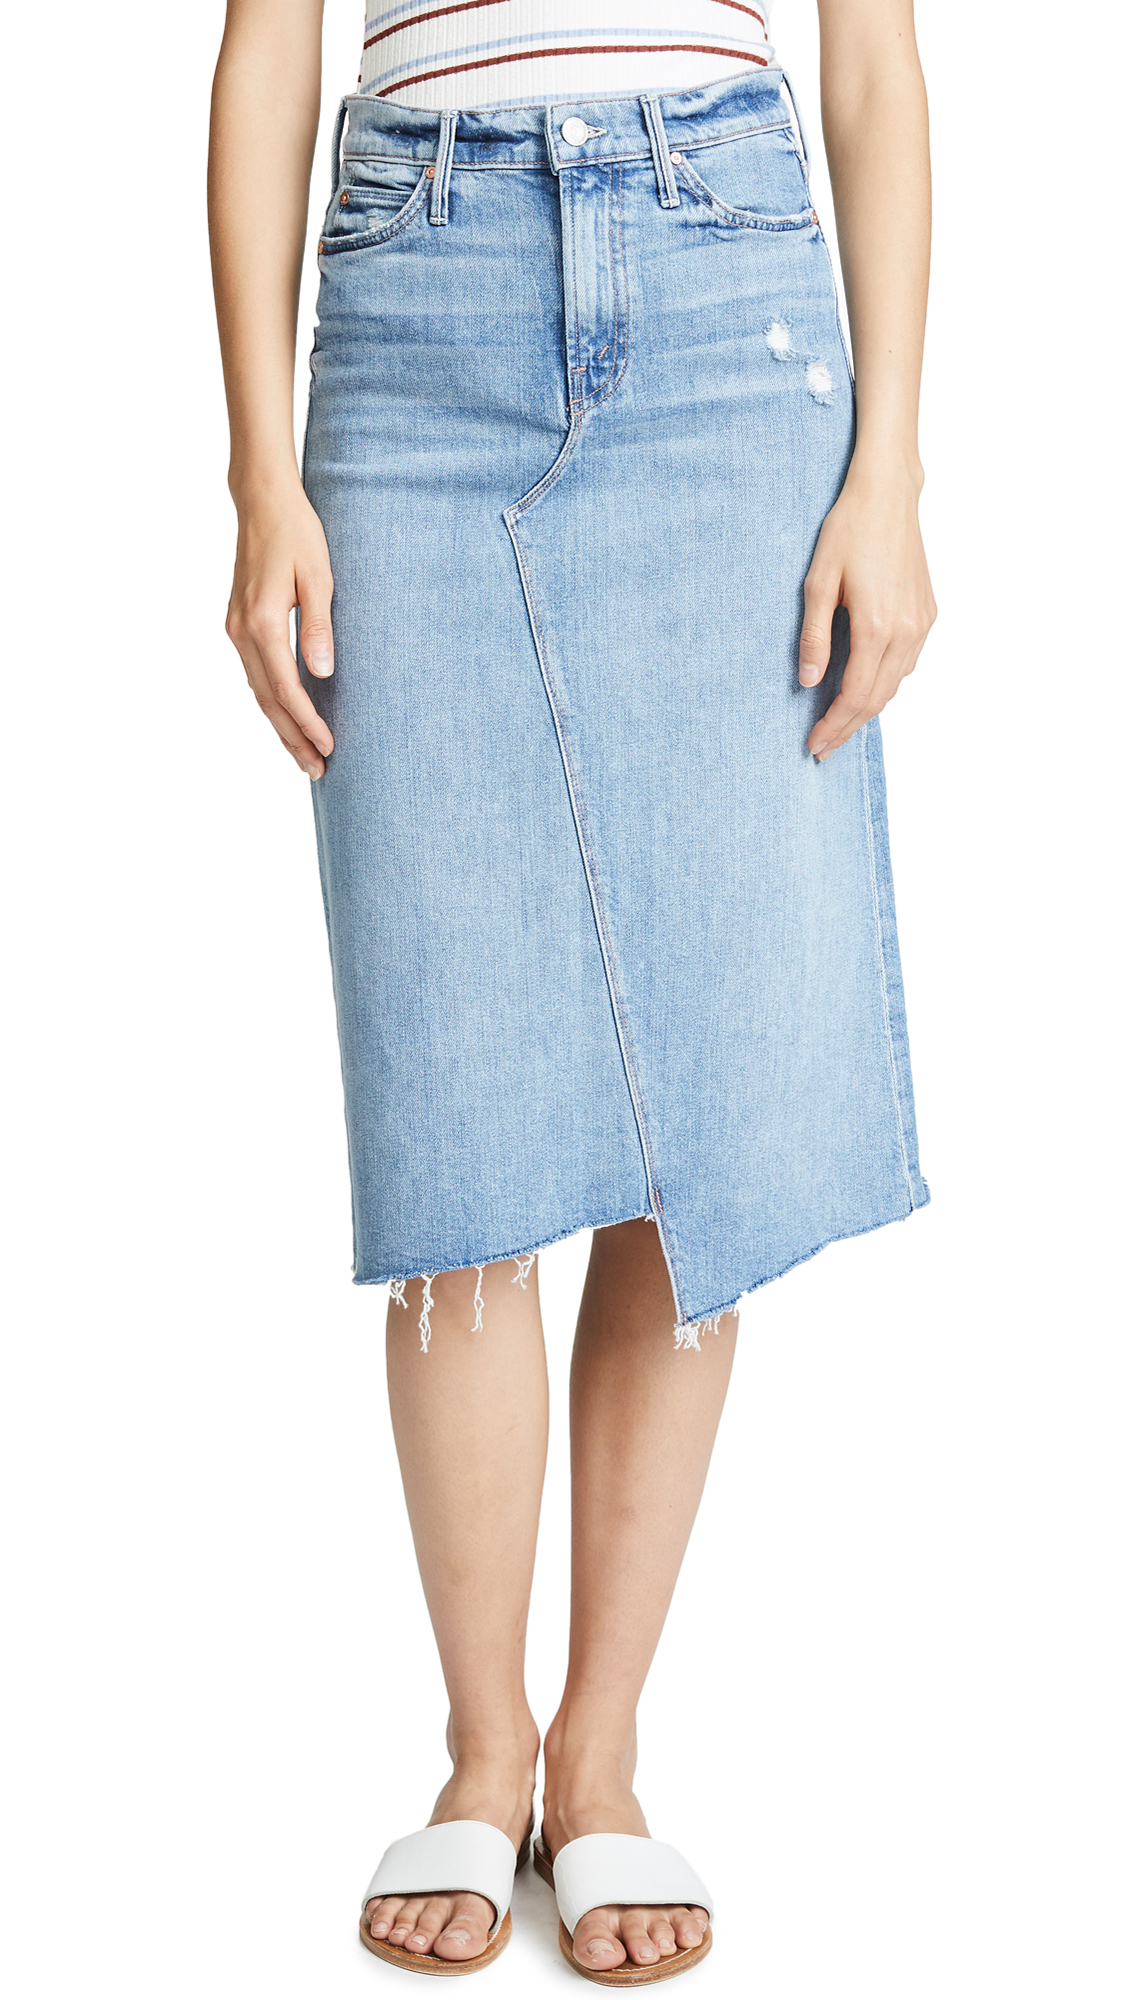 MOTHER The Straight A Step Fray Skirt In Misbeliever